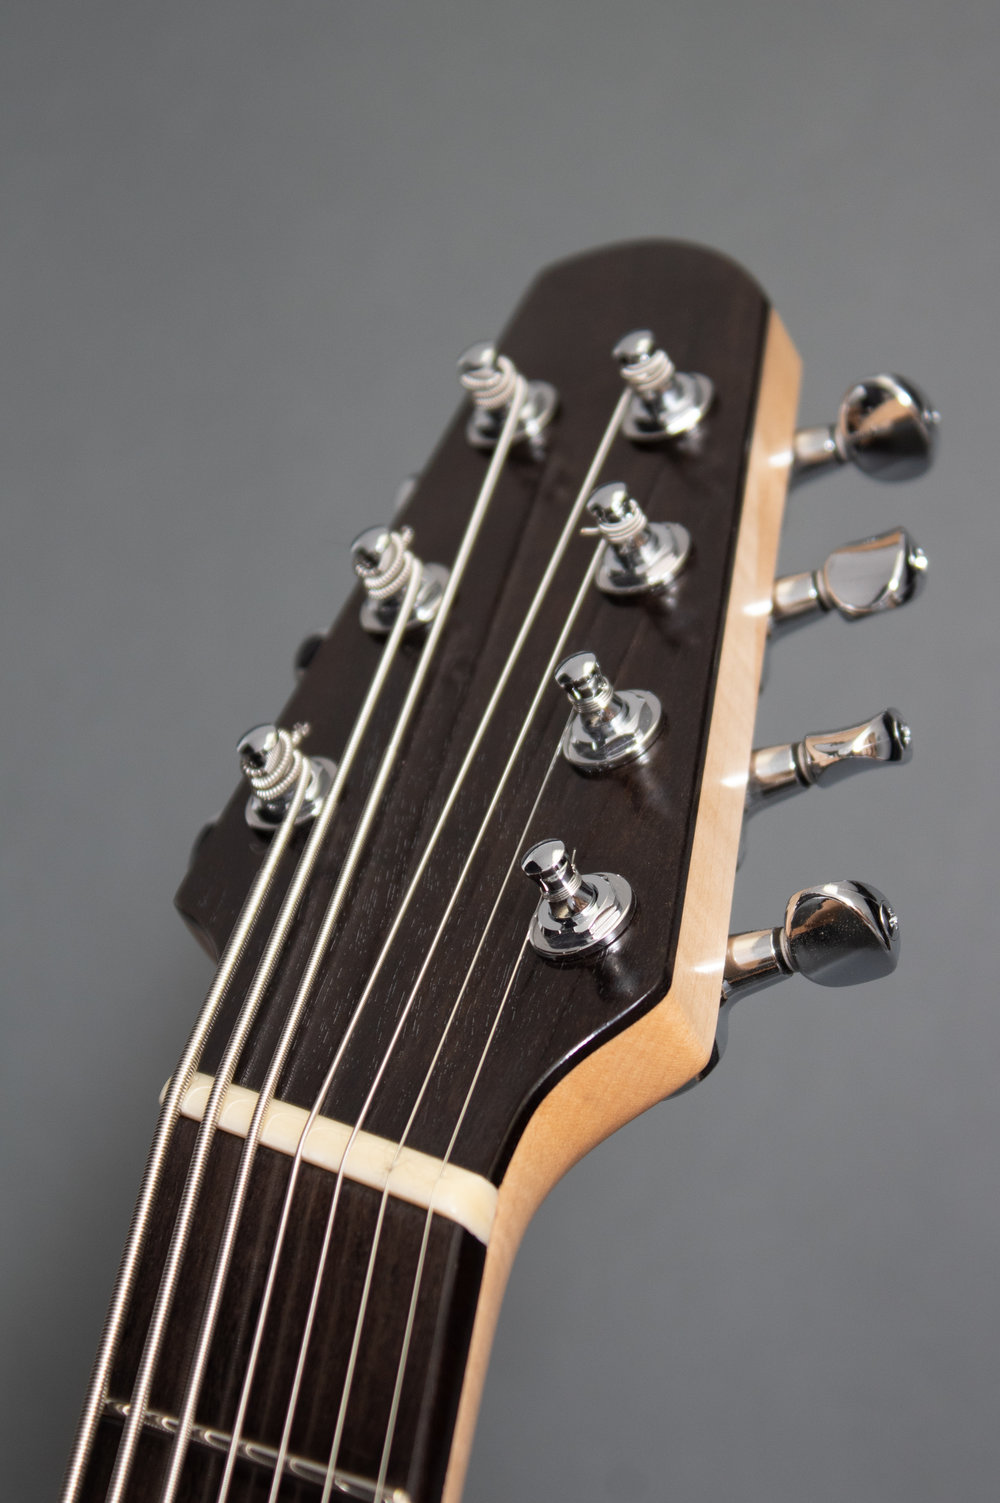 For Sale Hybrid Guitars Co 4 Pole 3 Way Switch Guitar Ch7 Ash Matte Of 14